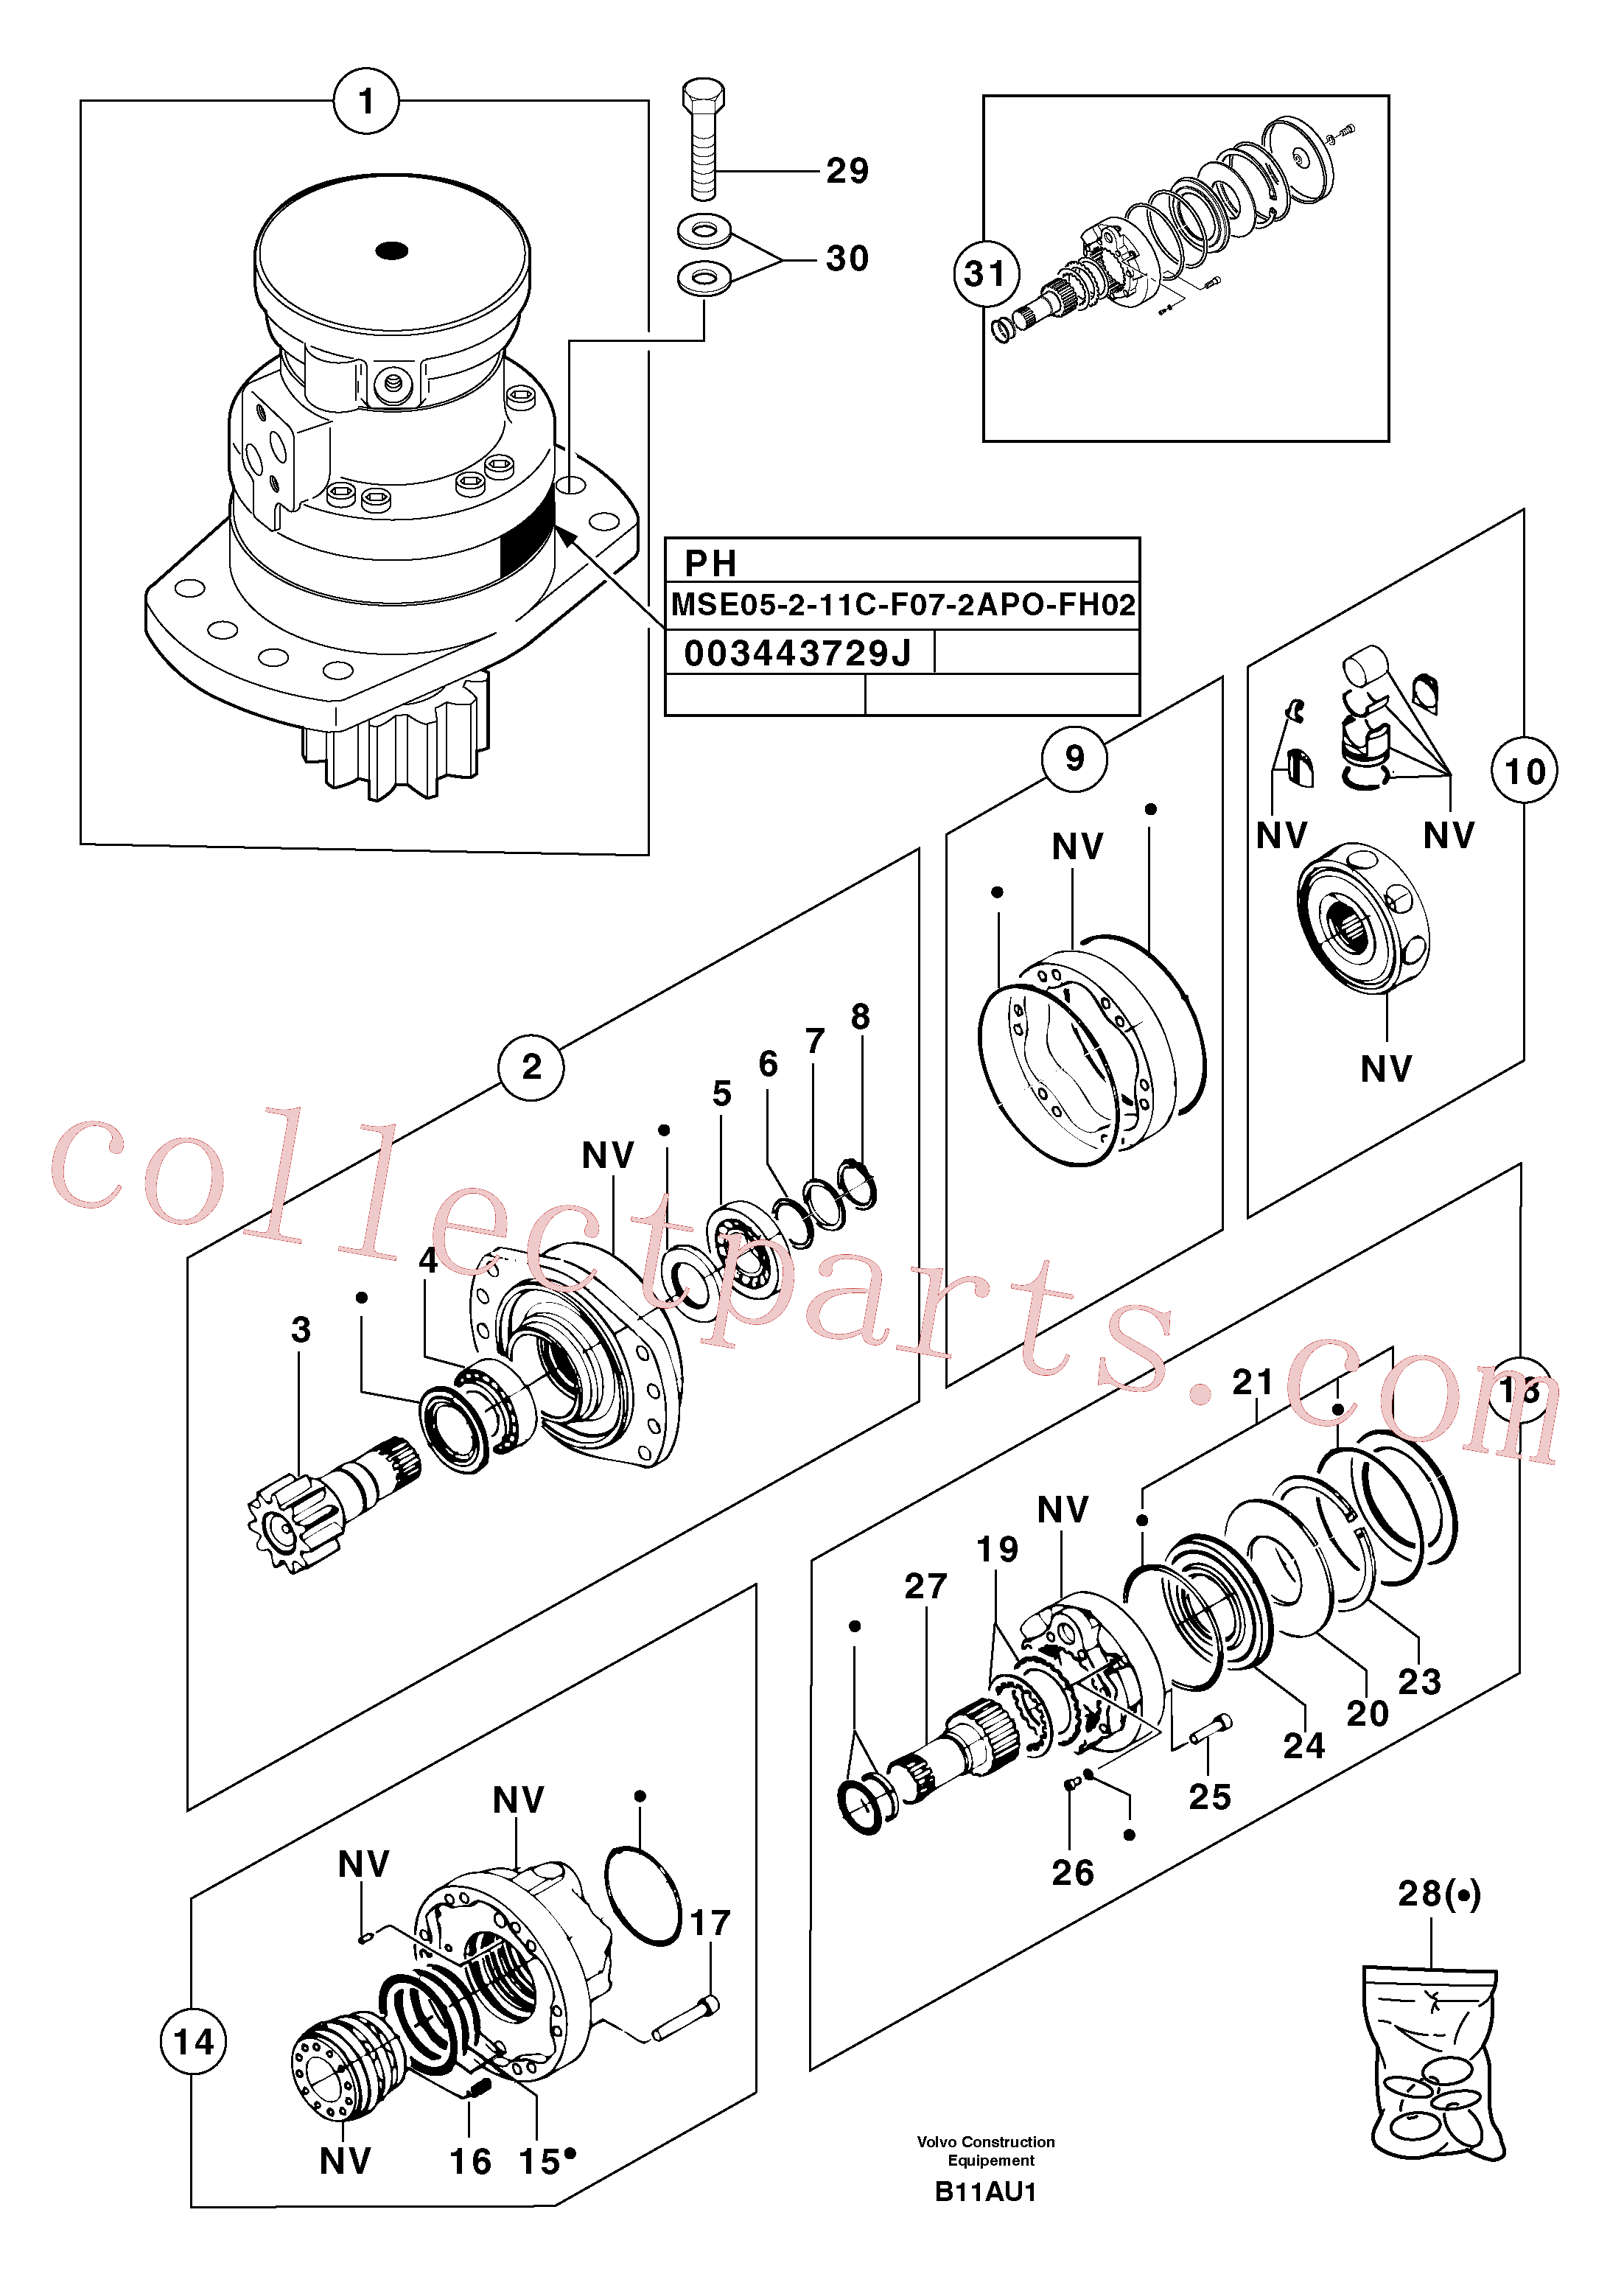 PJ7416976 for Volvo Slewing gear motor(B11AU1 assembly)